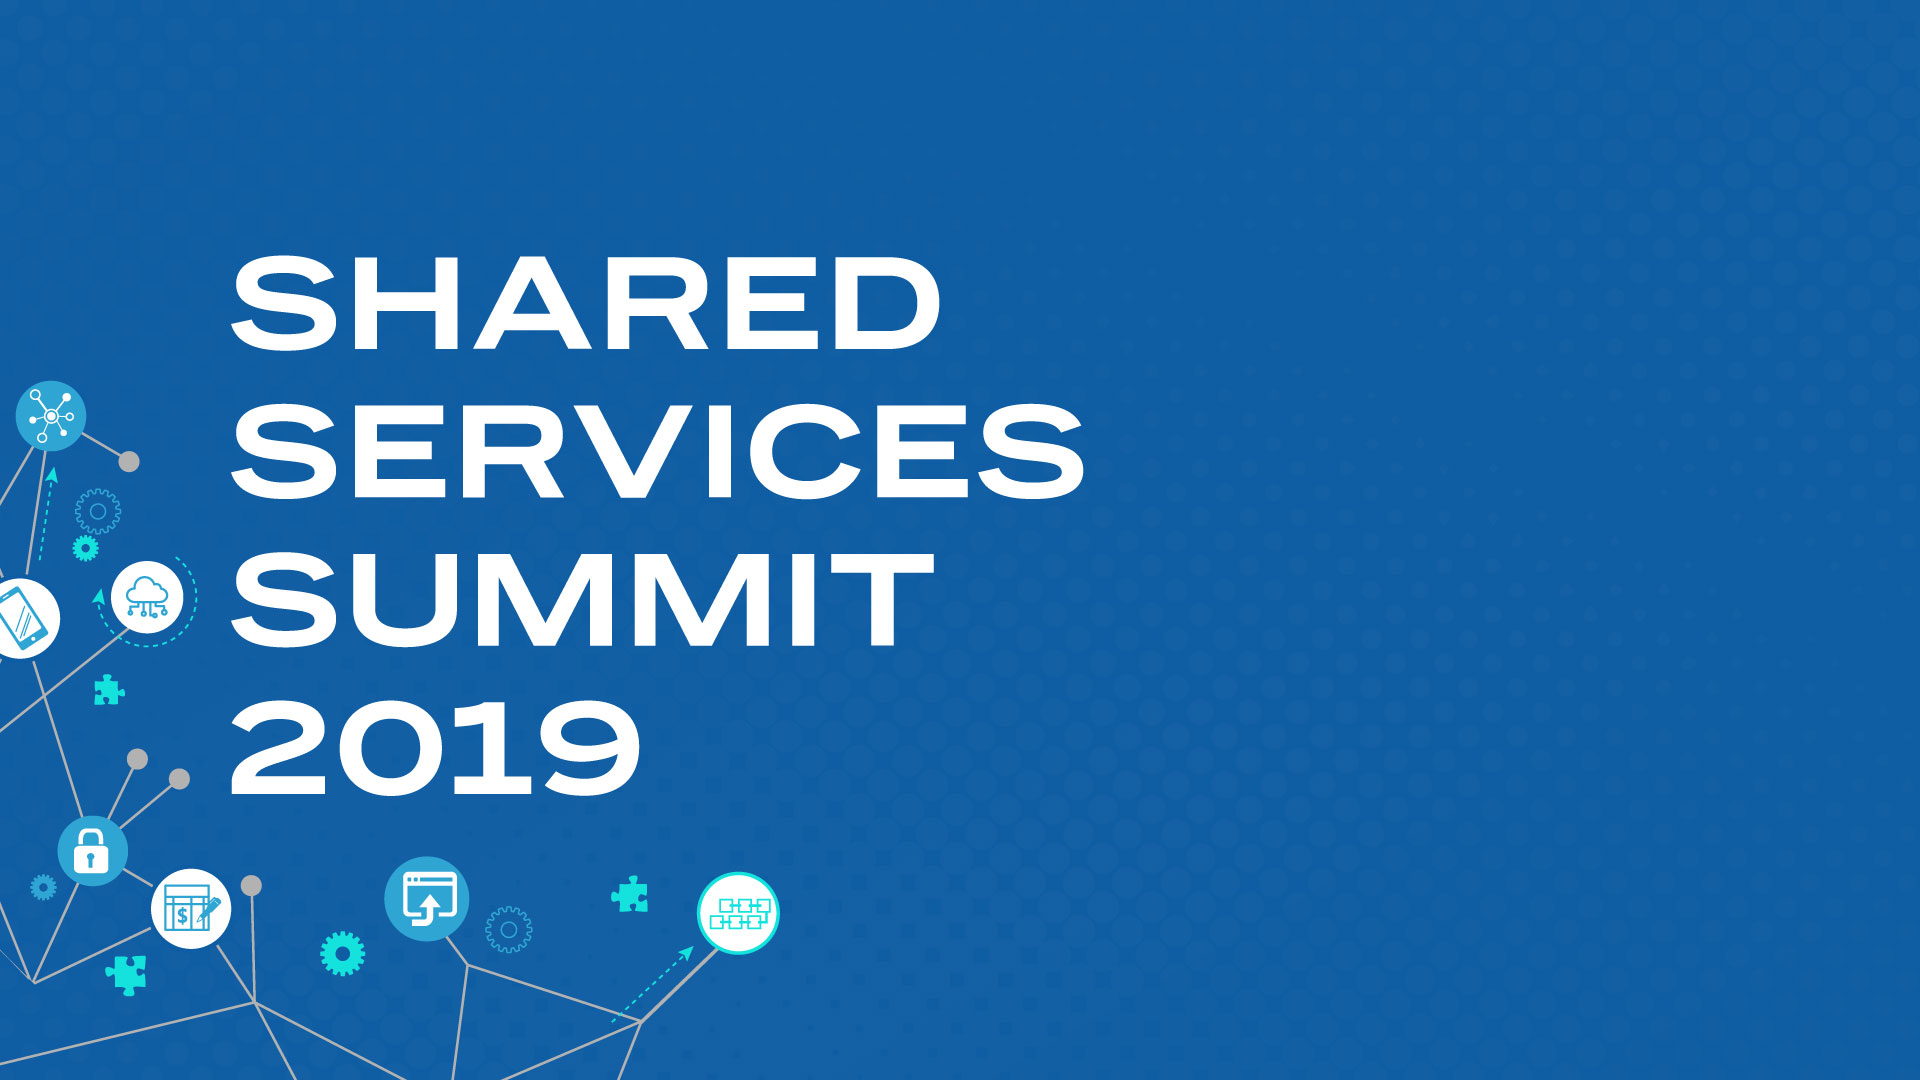 Shared Services Summit 2019